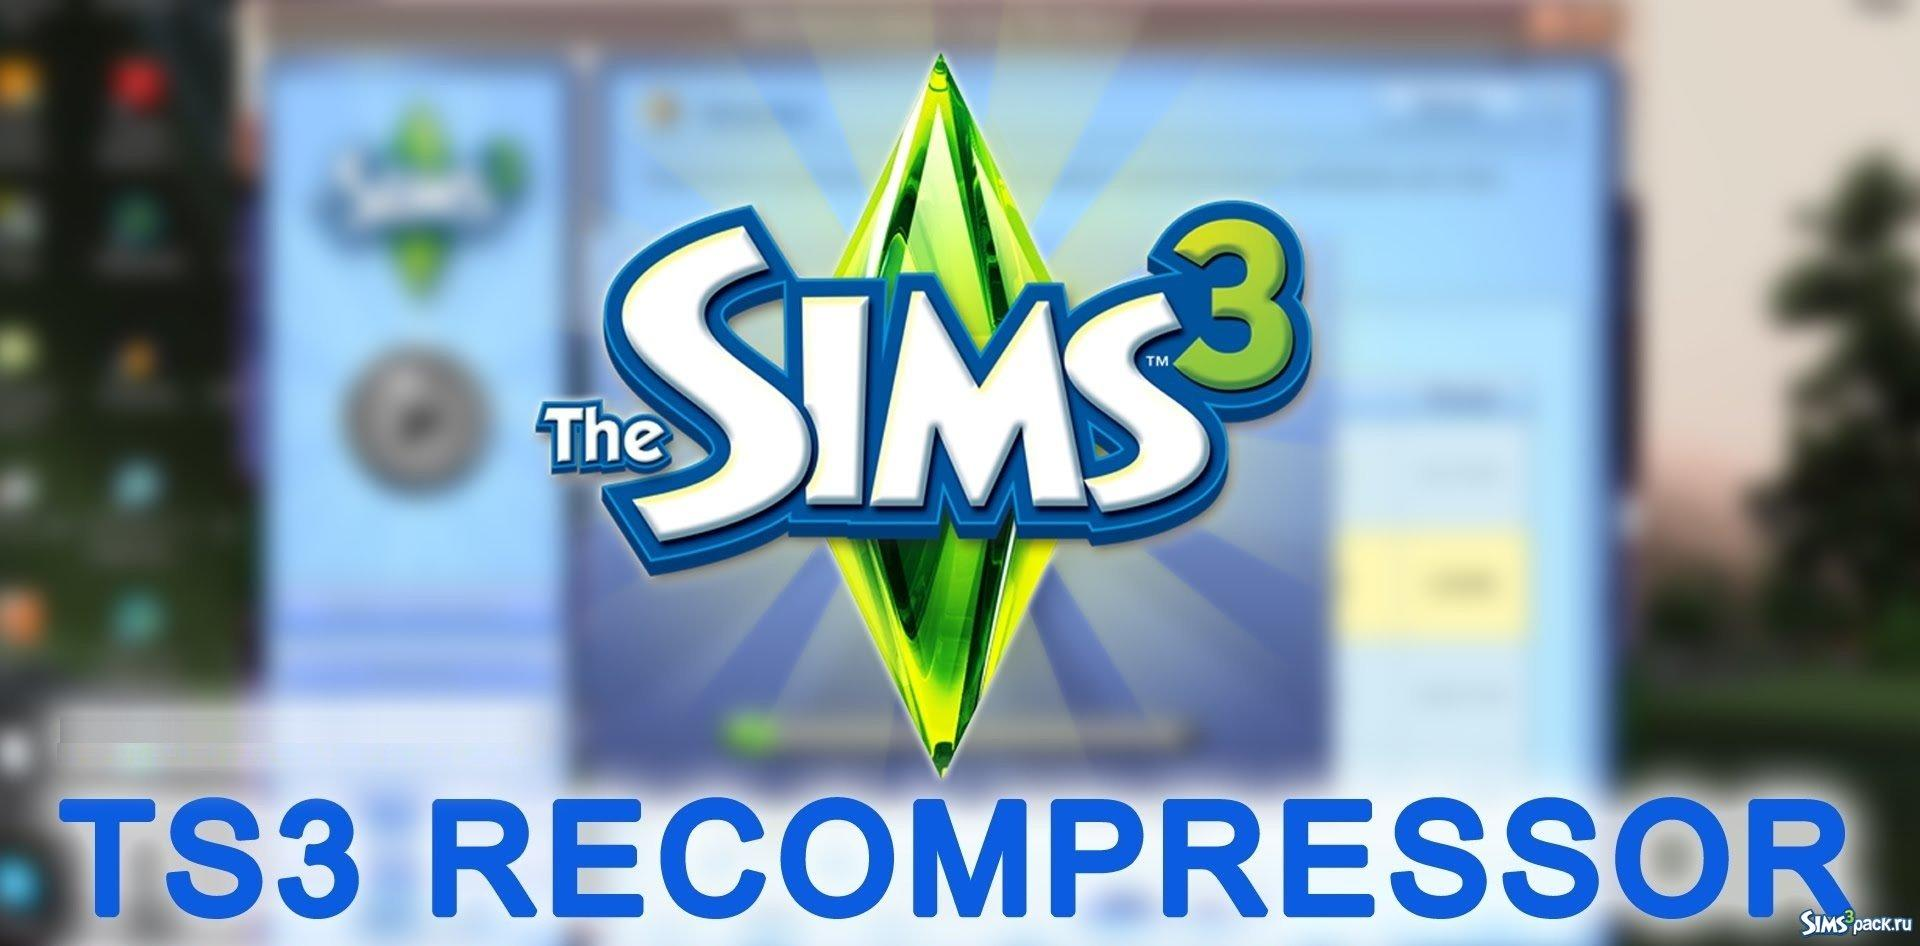 Программа Windows TS3 recompressor для Sims 3